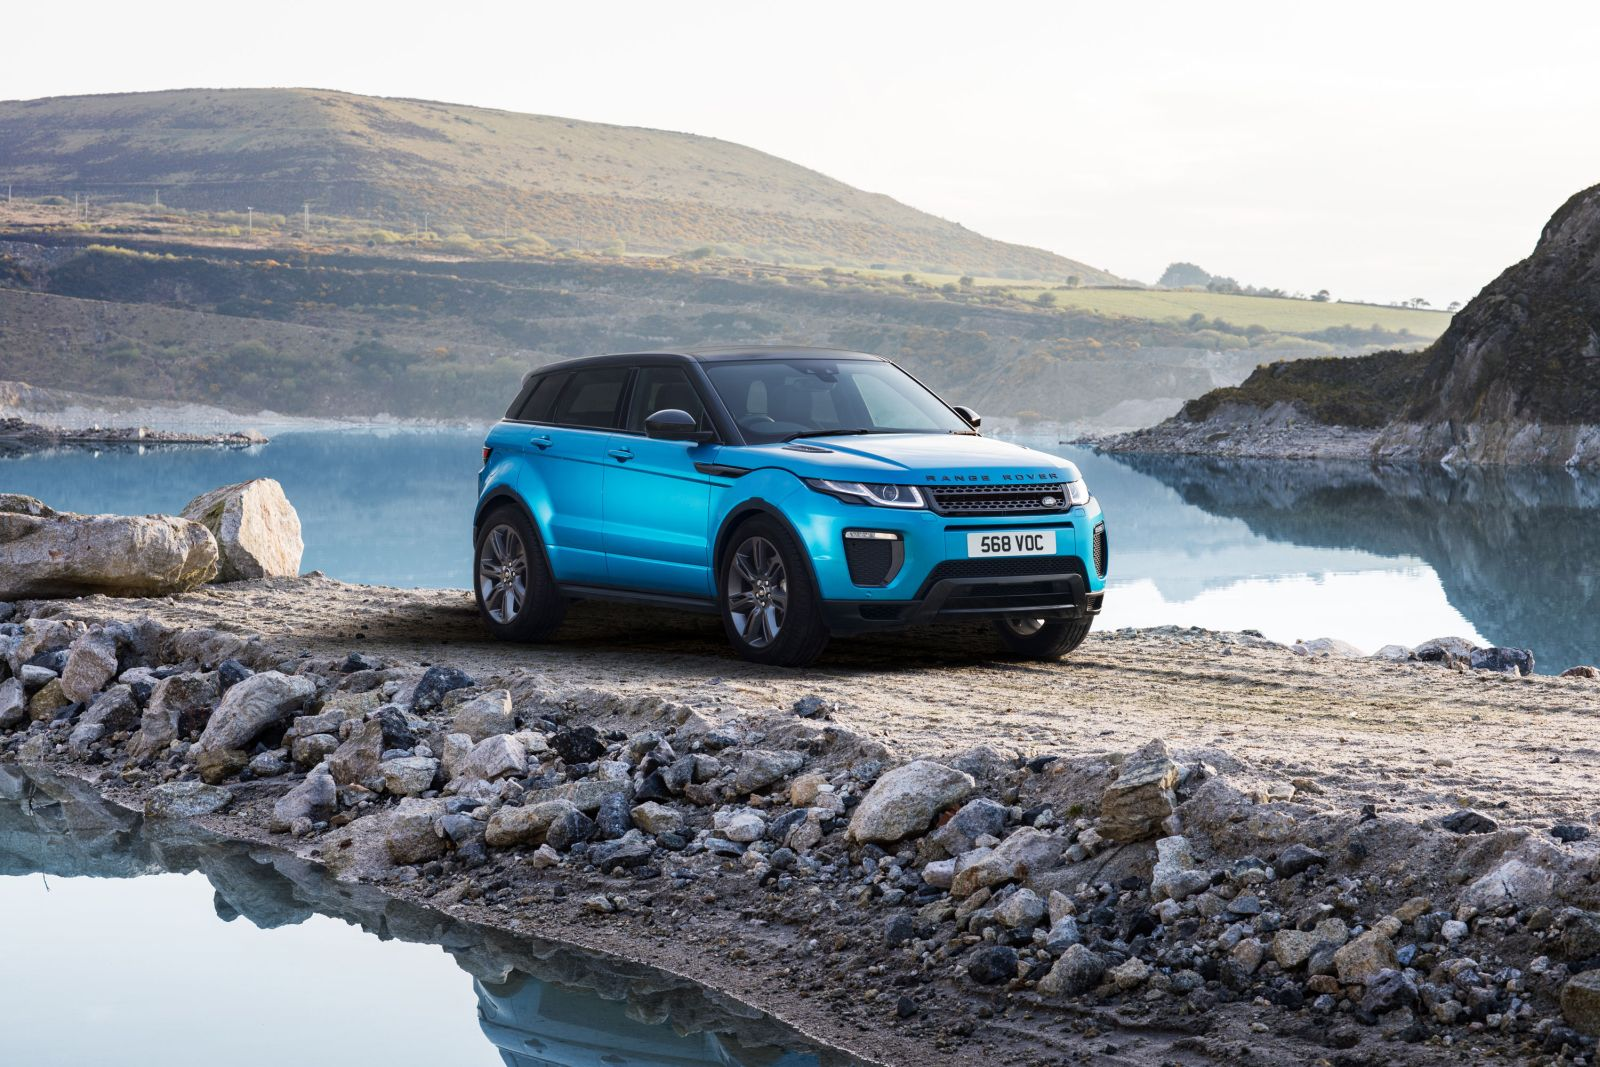 range rover evoque landmark edition launched in india motoroids. Black Bedroom Furniture Sets. Home Design Ideas